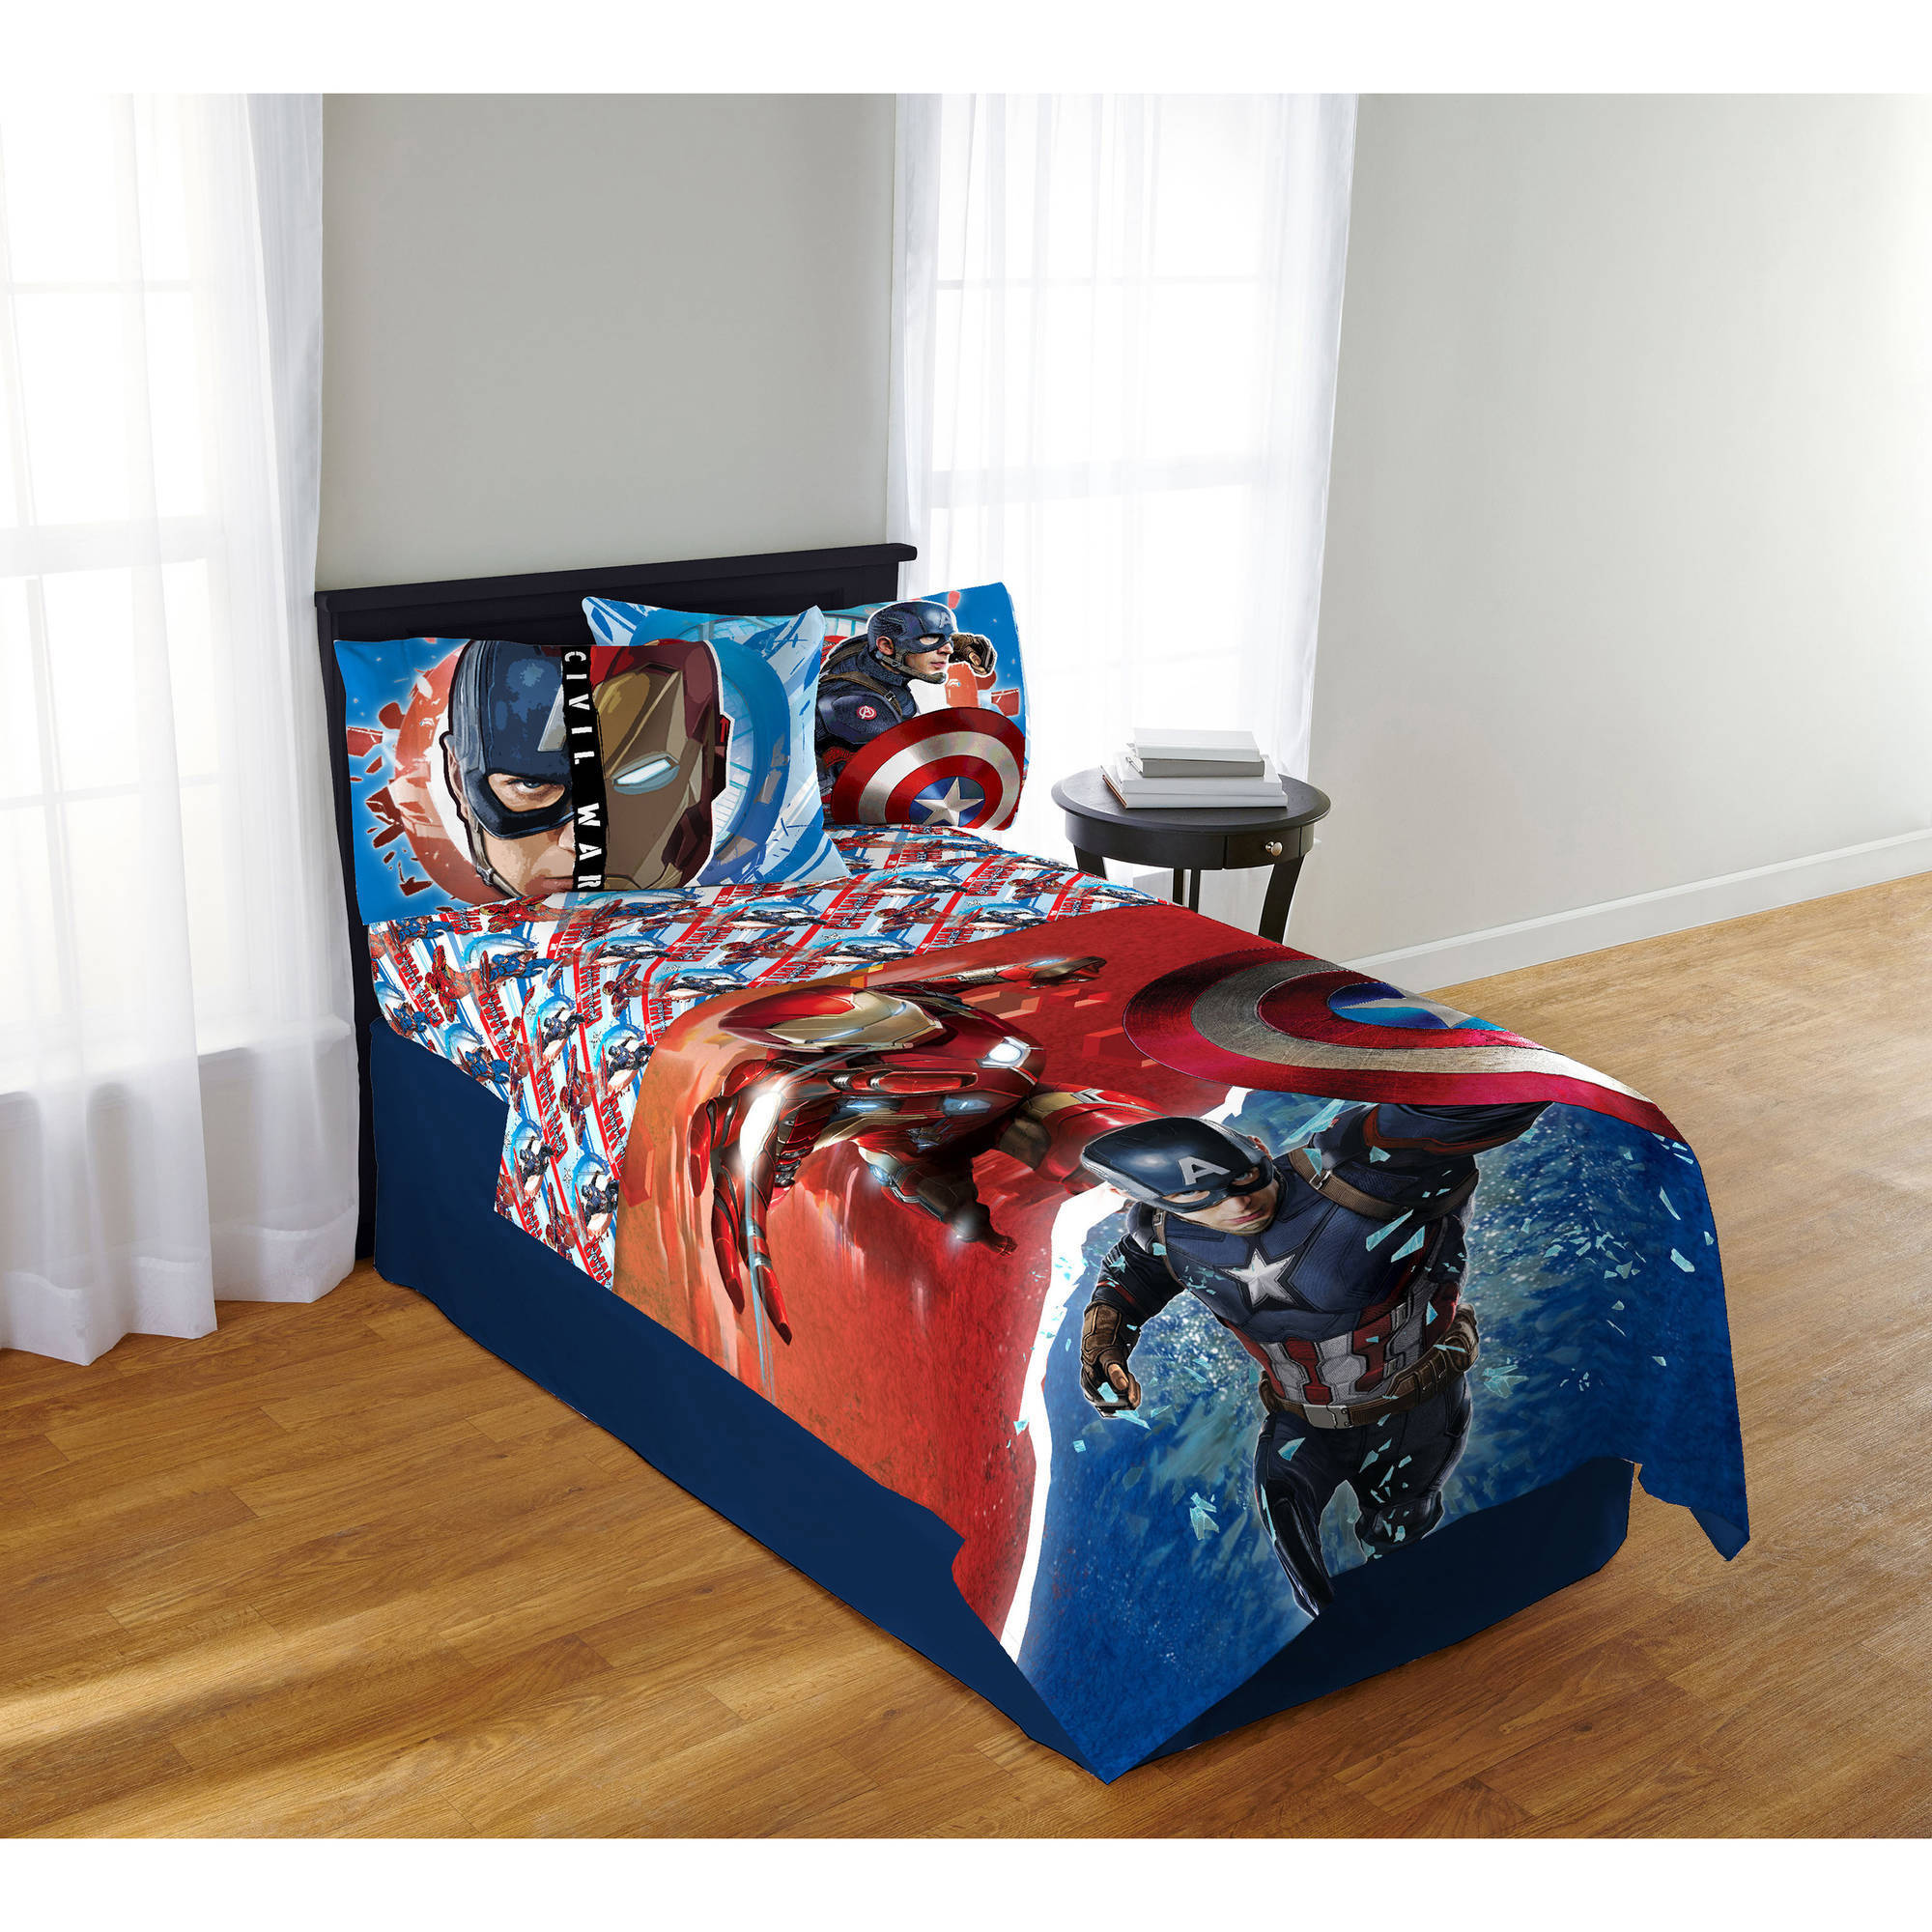 ultron in comforter it fans at blog here of bedding what avengers any s looks age well your like household home the